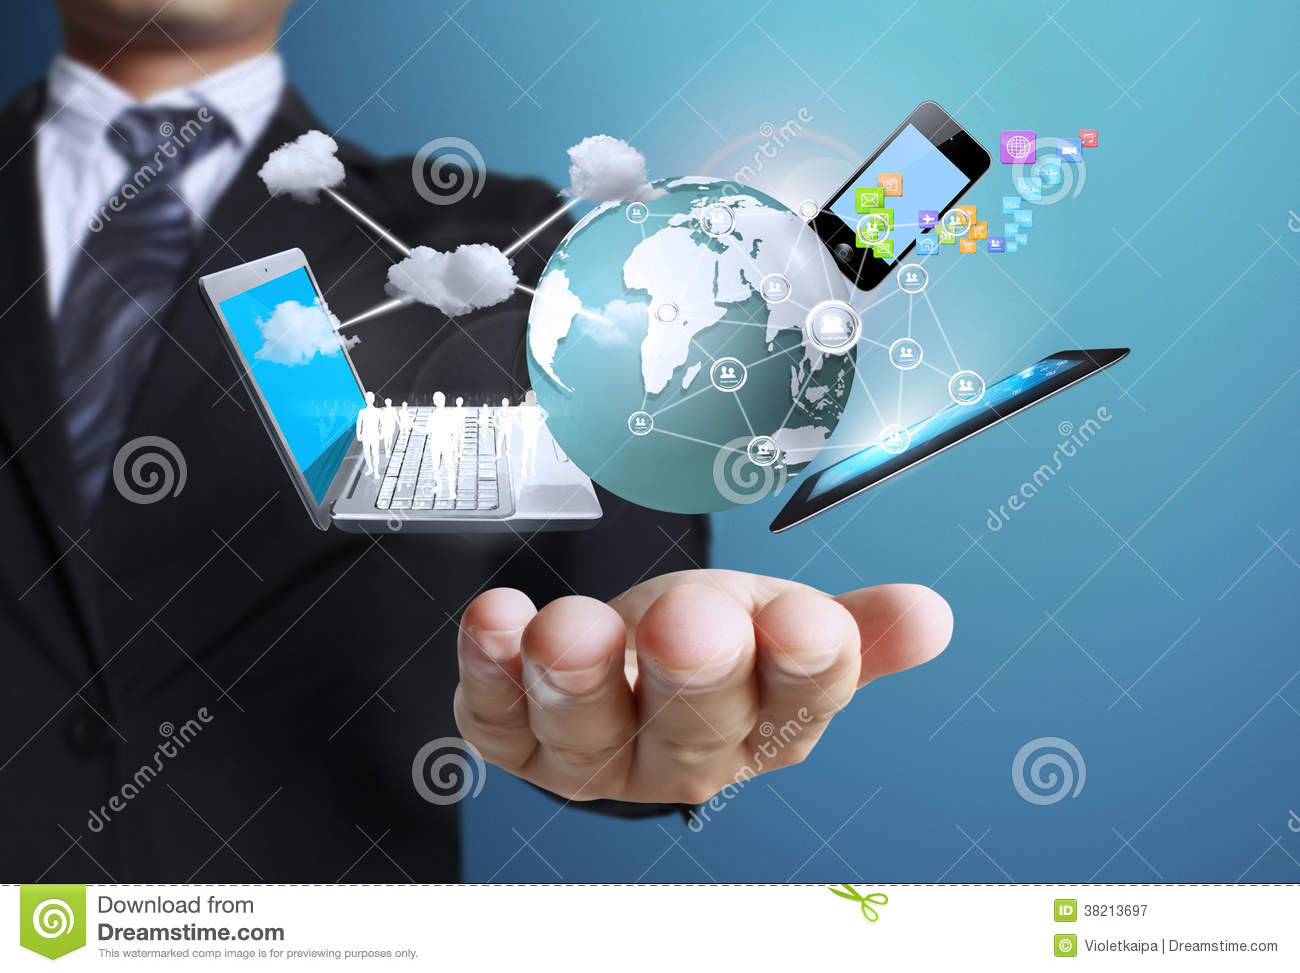 Technology In The Hands Royalty Free Stock Photography